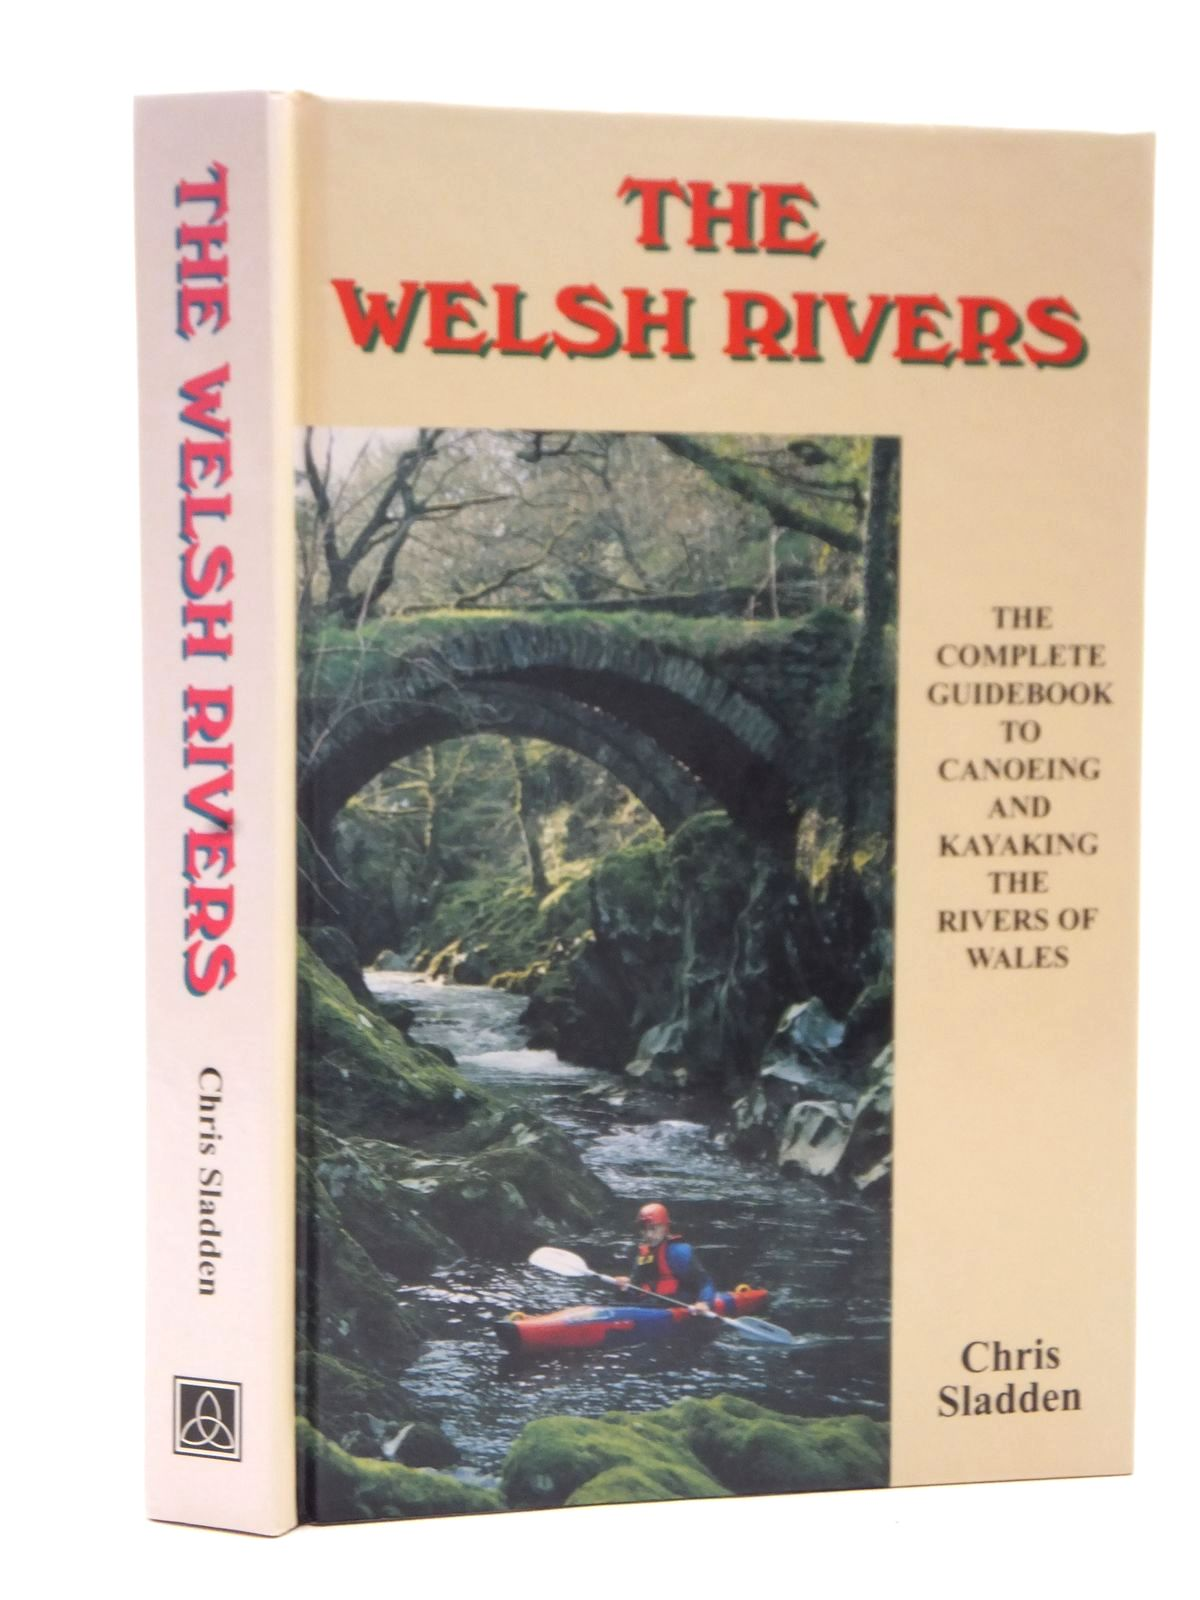 Photo of THE WELSH RIVERS THE COMPLETE GUIDE TO CANOEING AND KAYAKING THE RIVERS OF WALES written by Sladden, Chris published by Chris Sladden Books (STOCK CODE: 2124119)  for sale by Stella & Rose's Books